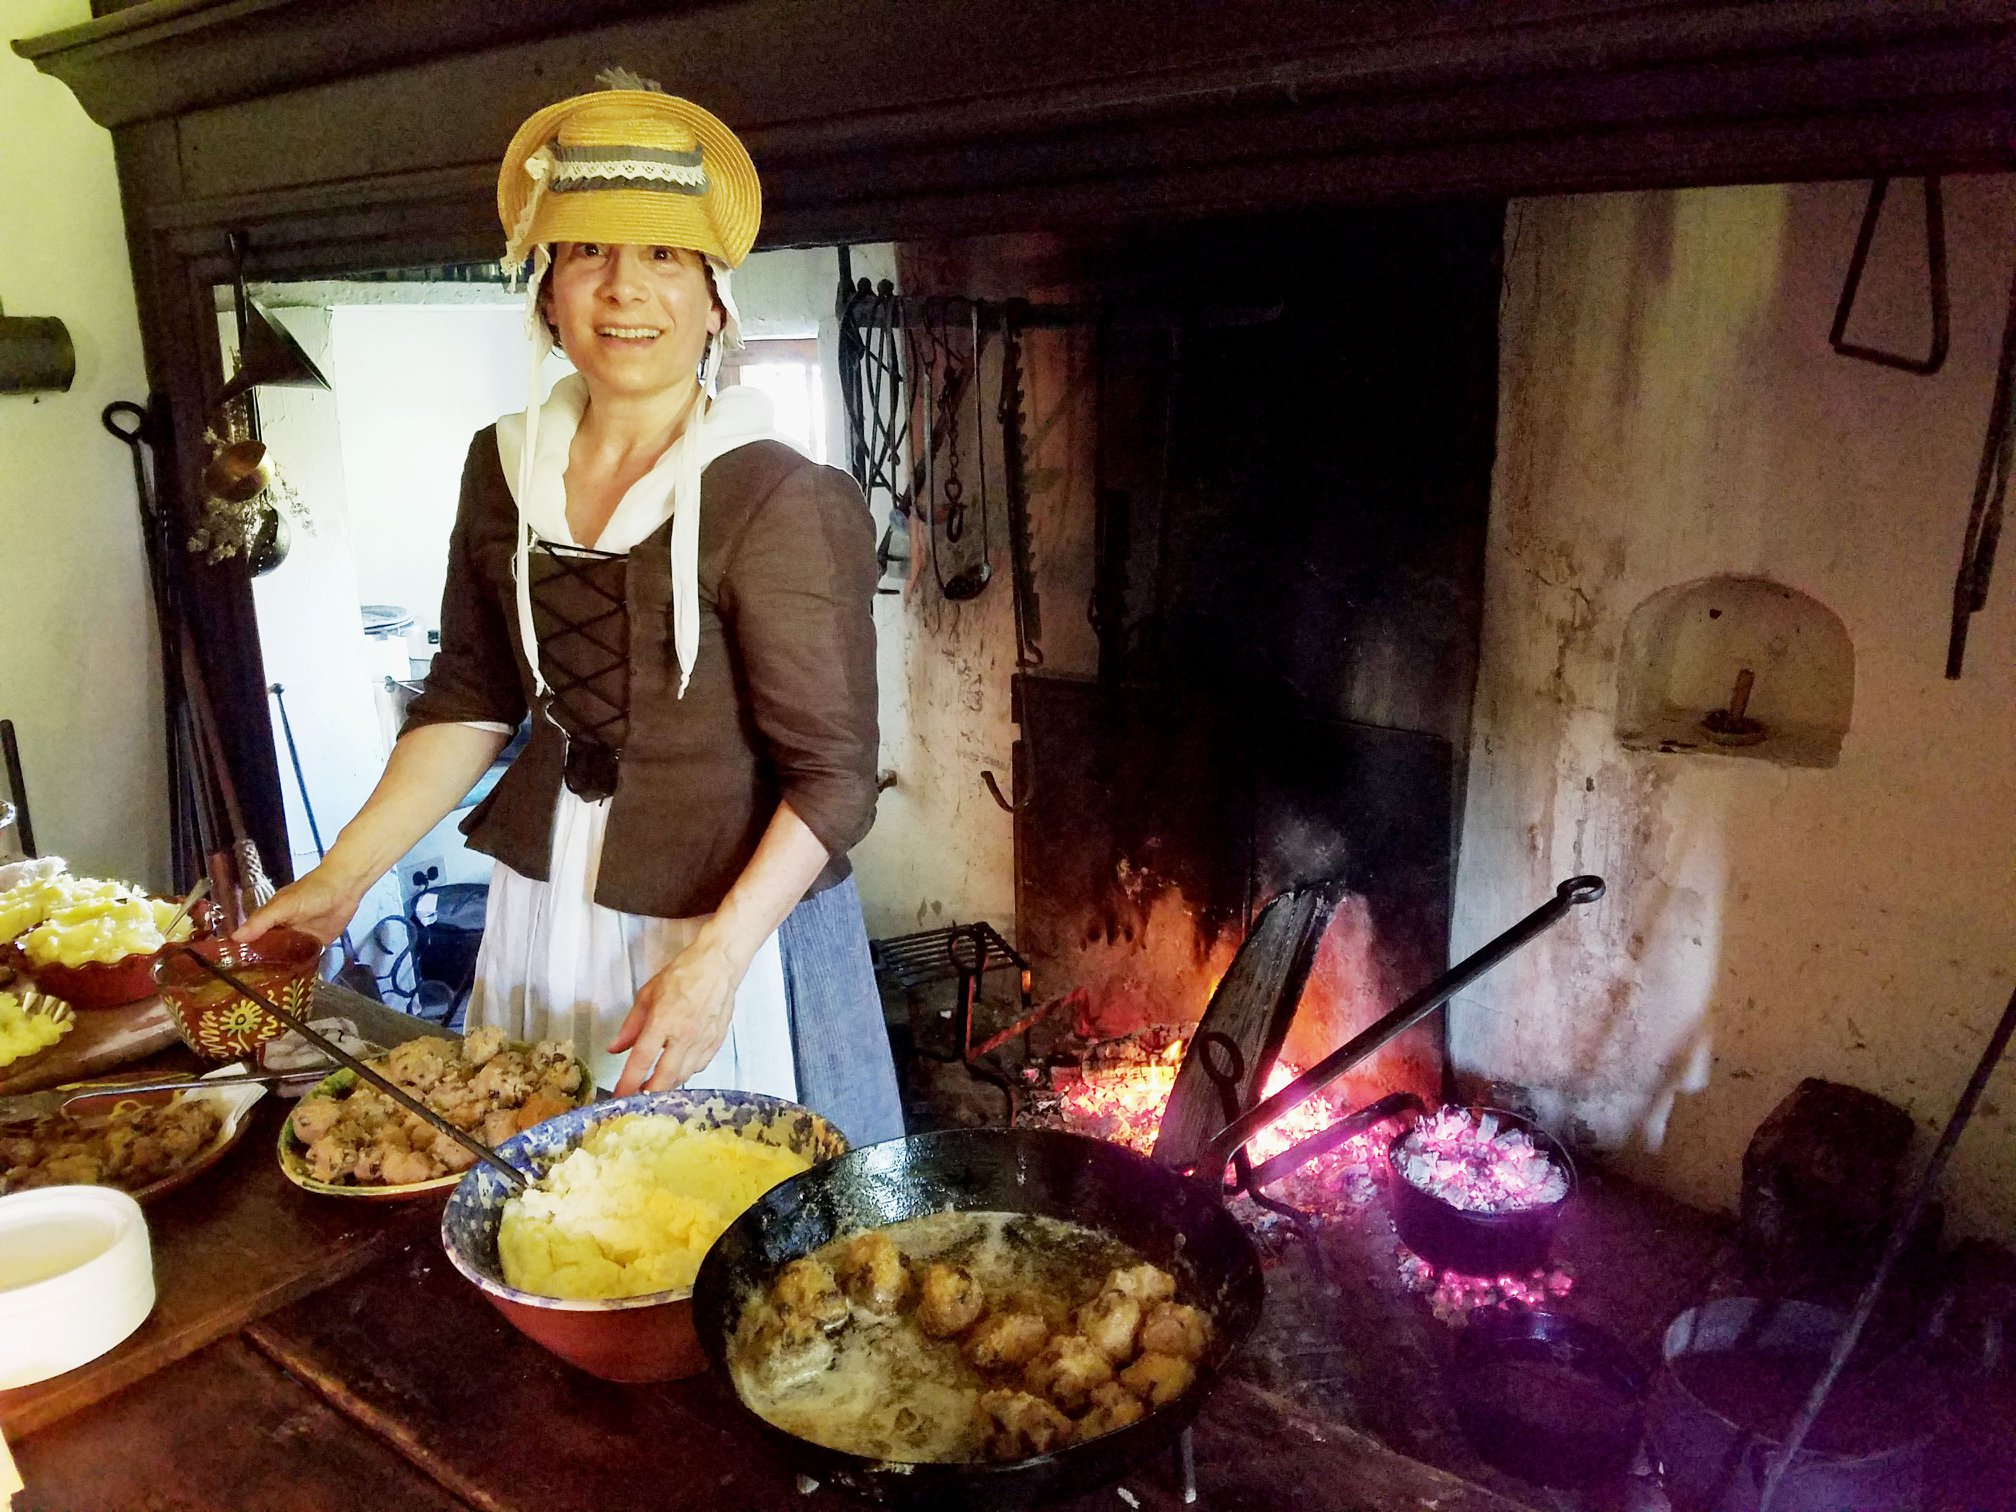 The main tavern today being used to cook historic foods